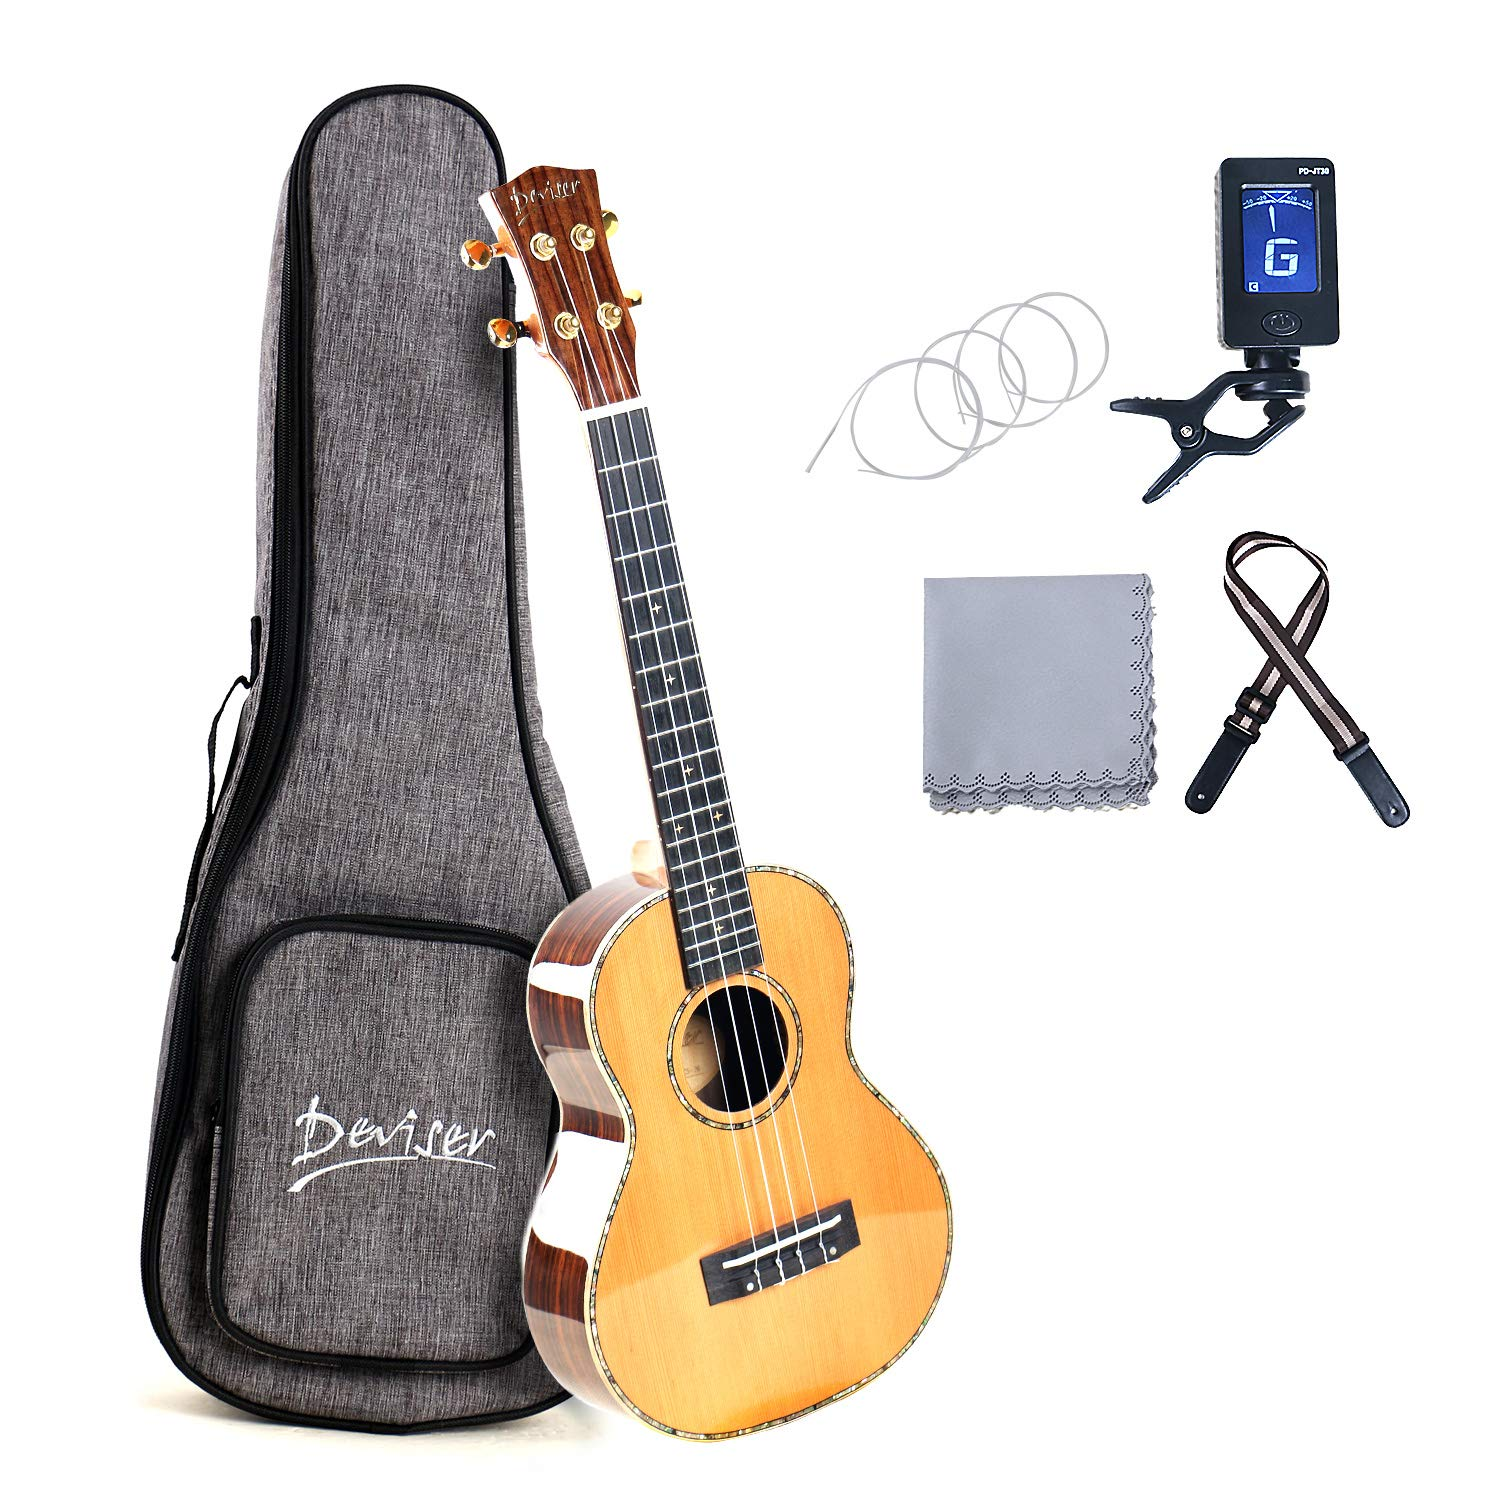 Deviser Concert 23inch professional ukulele Solid Koa Top Koa back /& side with Gig Bag /& Aquila String /& Digital Tuner /& Strap /& Polishing Cloth